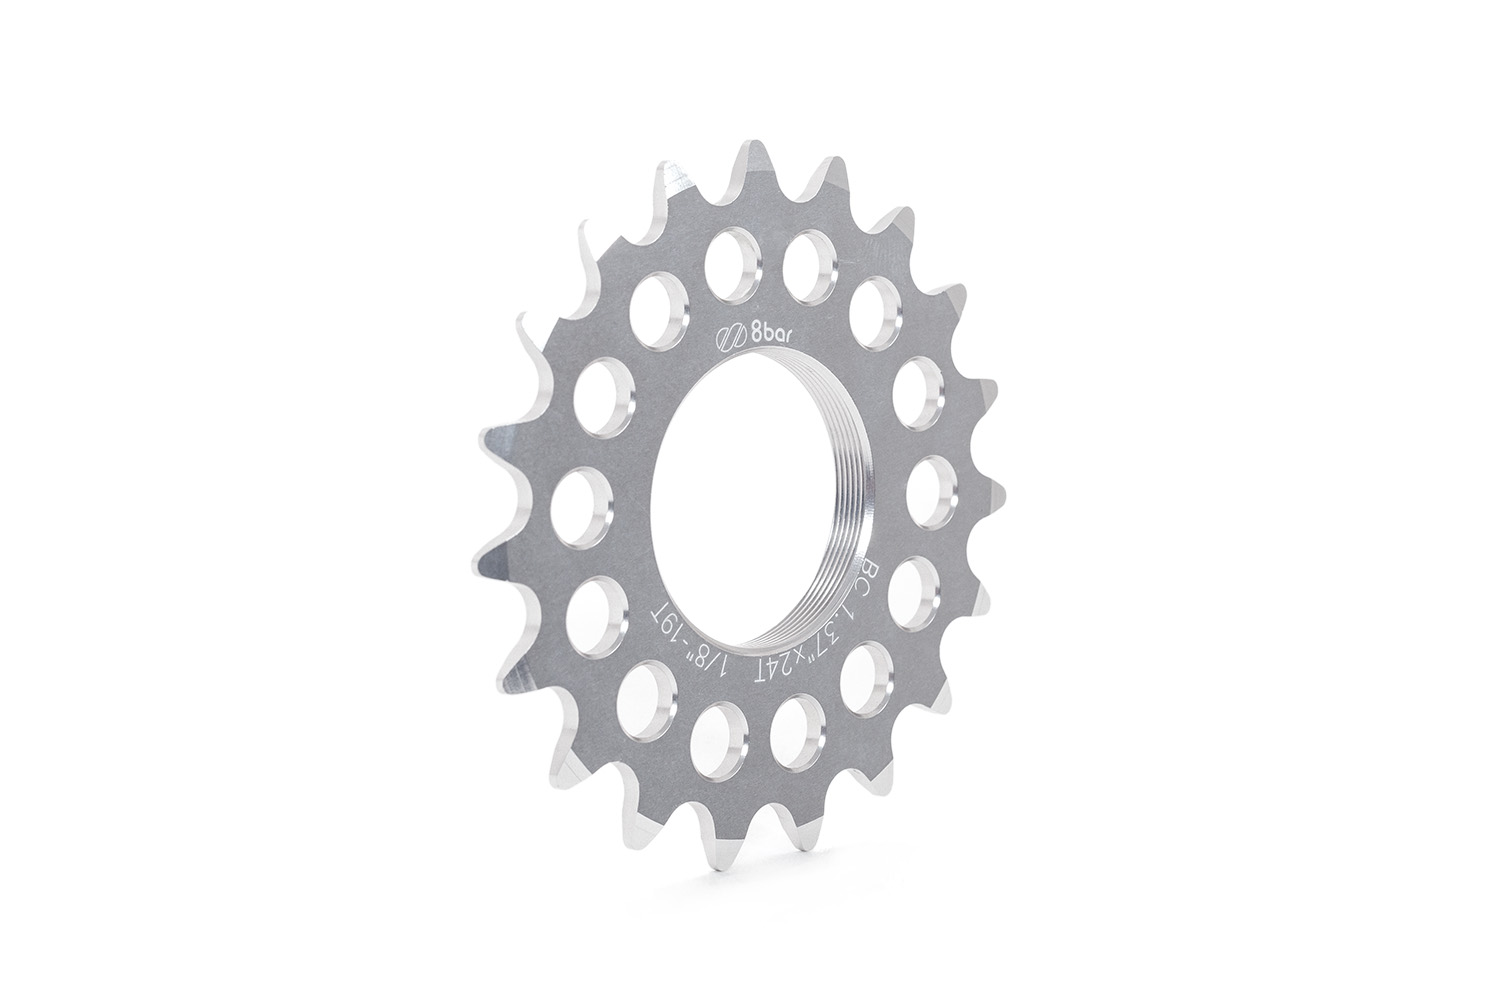 8bar-sprocket-silver-19t-45-fixie-fixed-gear-2